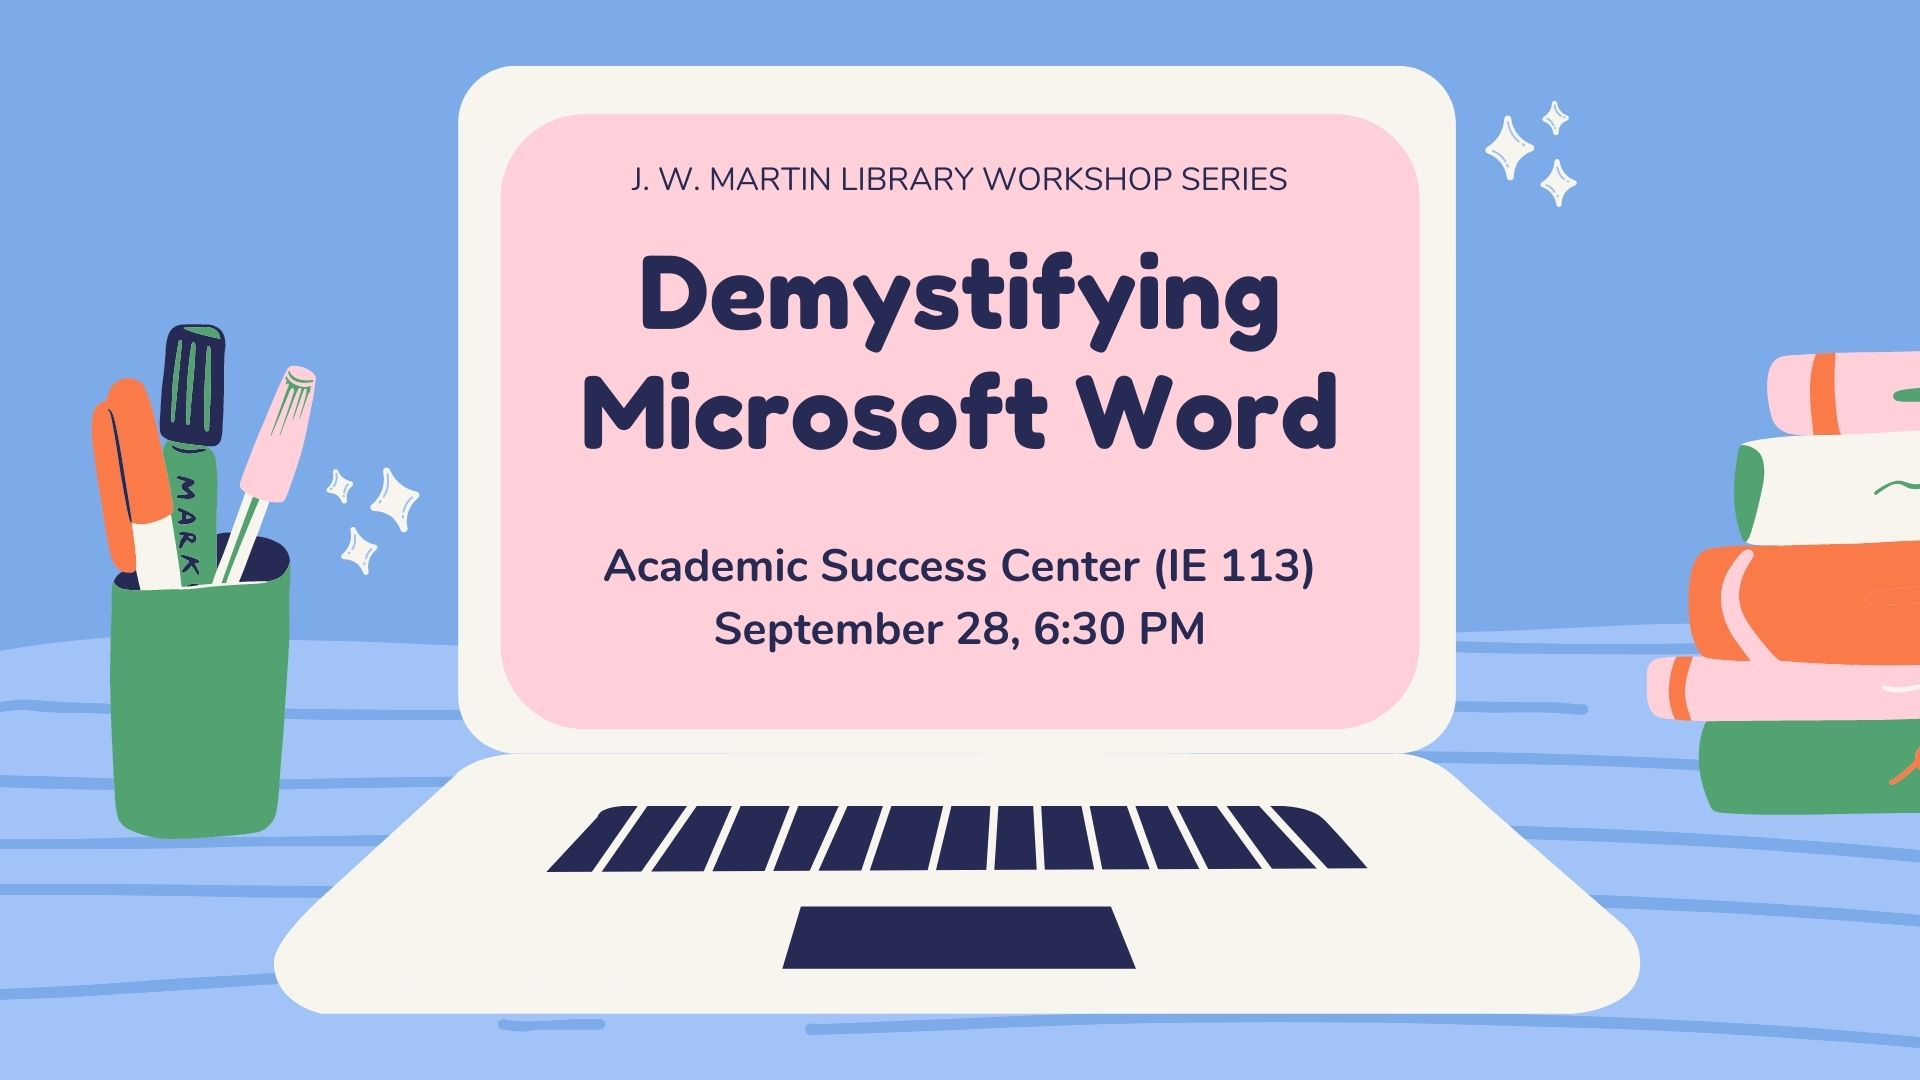 Microsoft Word workshop in the Academic Success Center, September 28 at 6:30 PM.